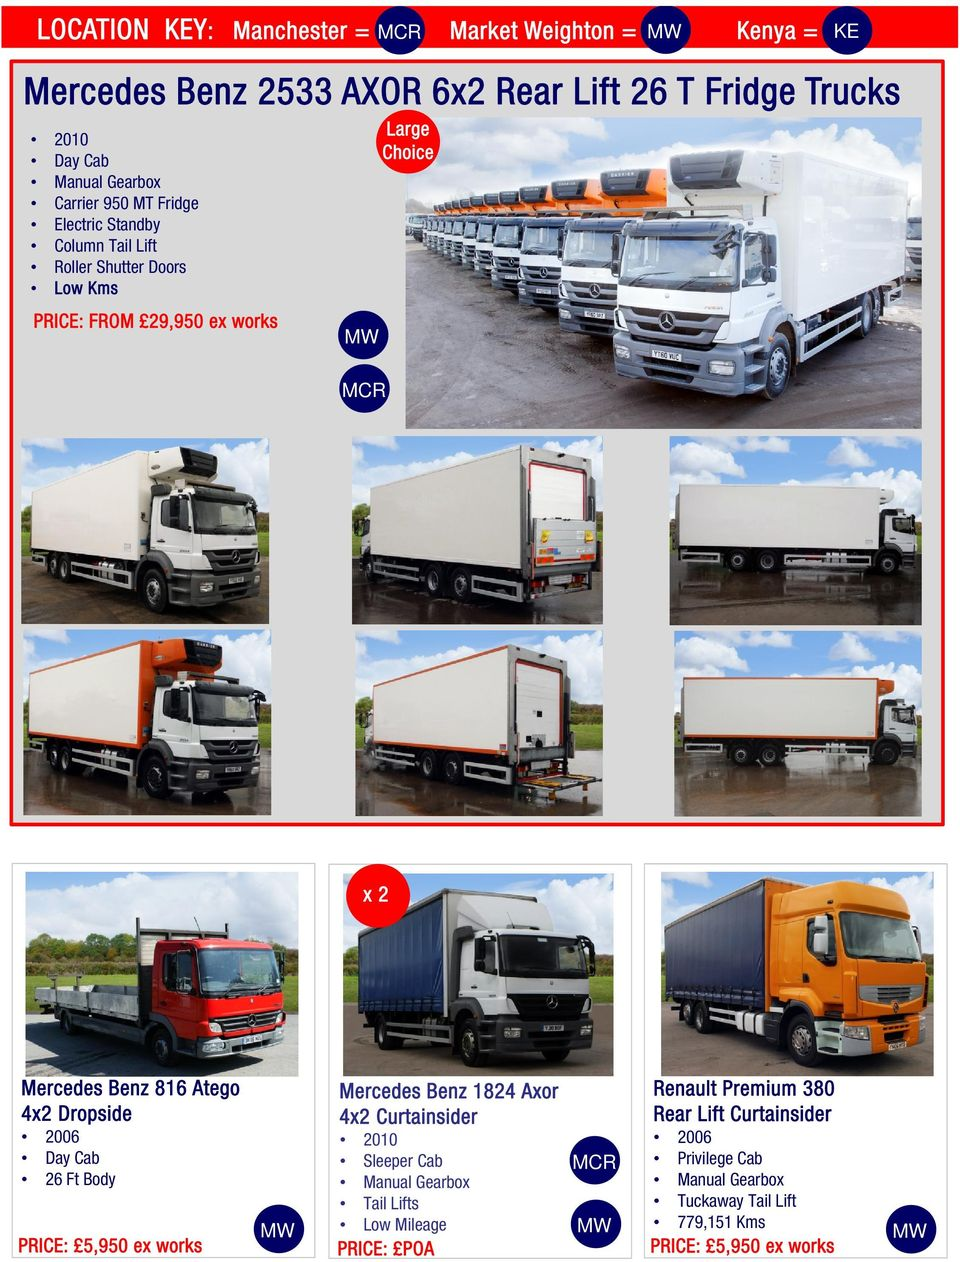 Mercedes Benz 816 Atego 4x2 Dropside 2006 Day Cab 26 Ft Body PRICE: 5,950 ex works Mercedes Benz 1824 Axor 4x2 Curtainsider